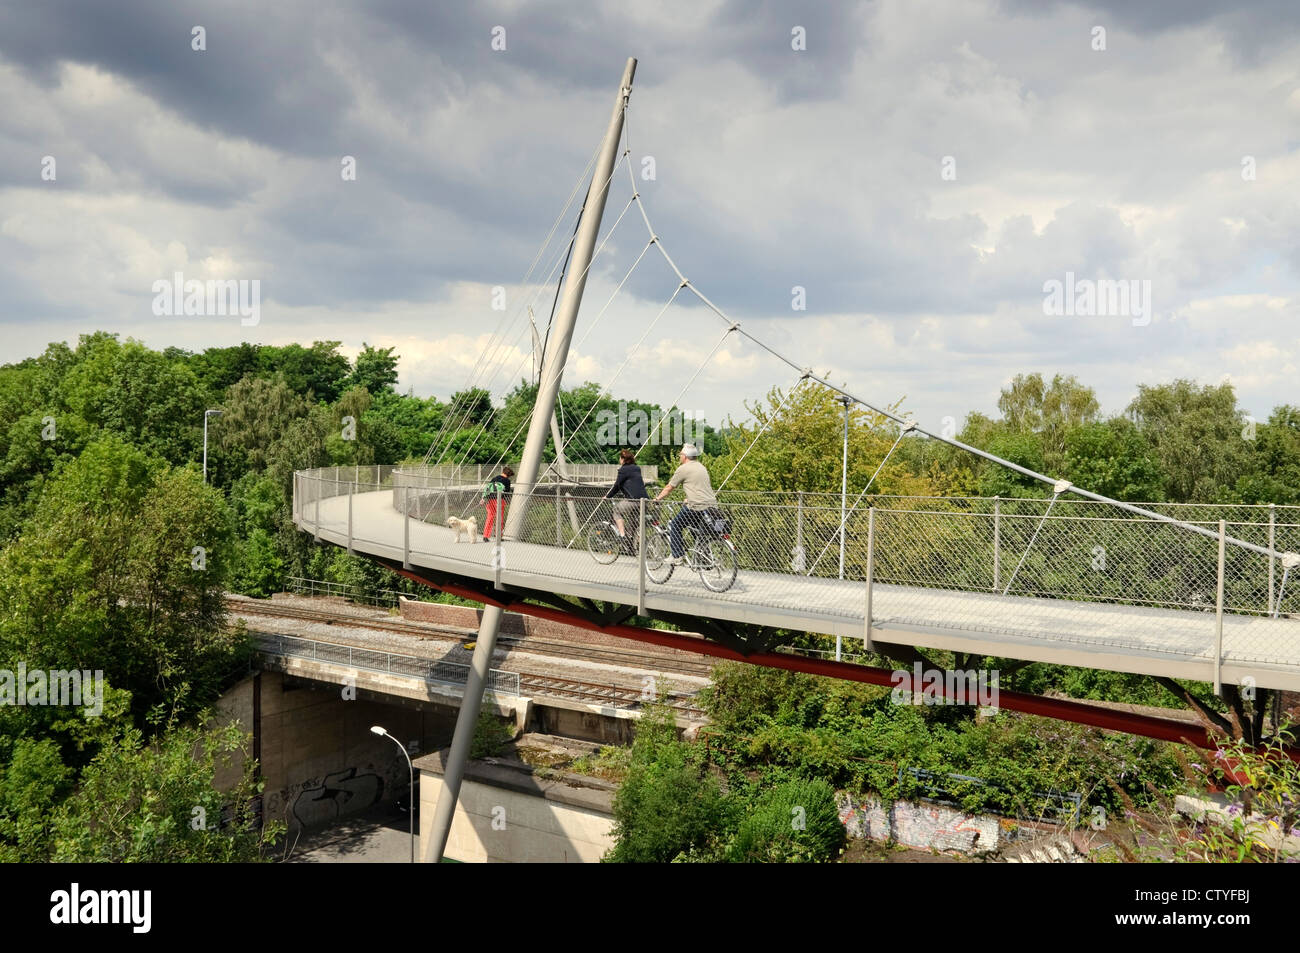 The Erzbahnschwinge on the Erzbahn cycle way, Bochum, Germany. - Stock Image